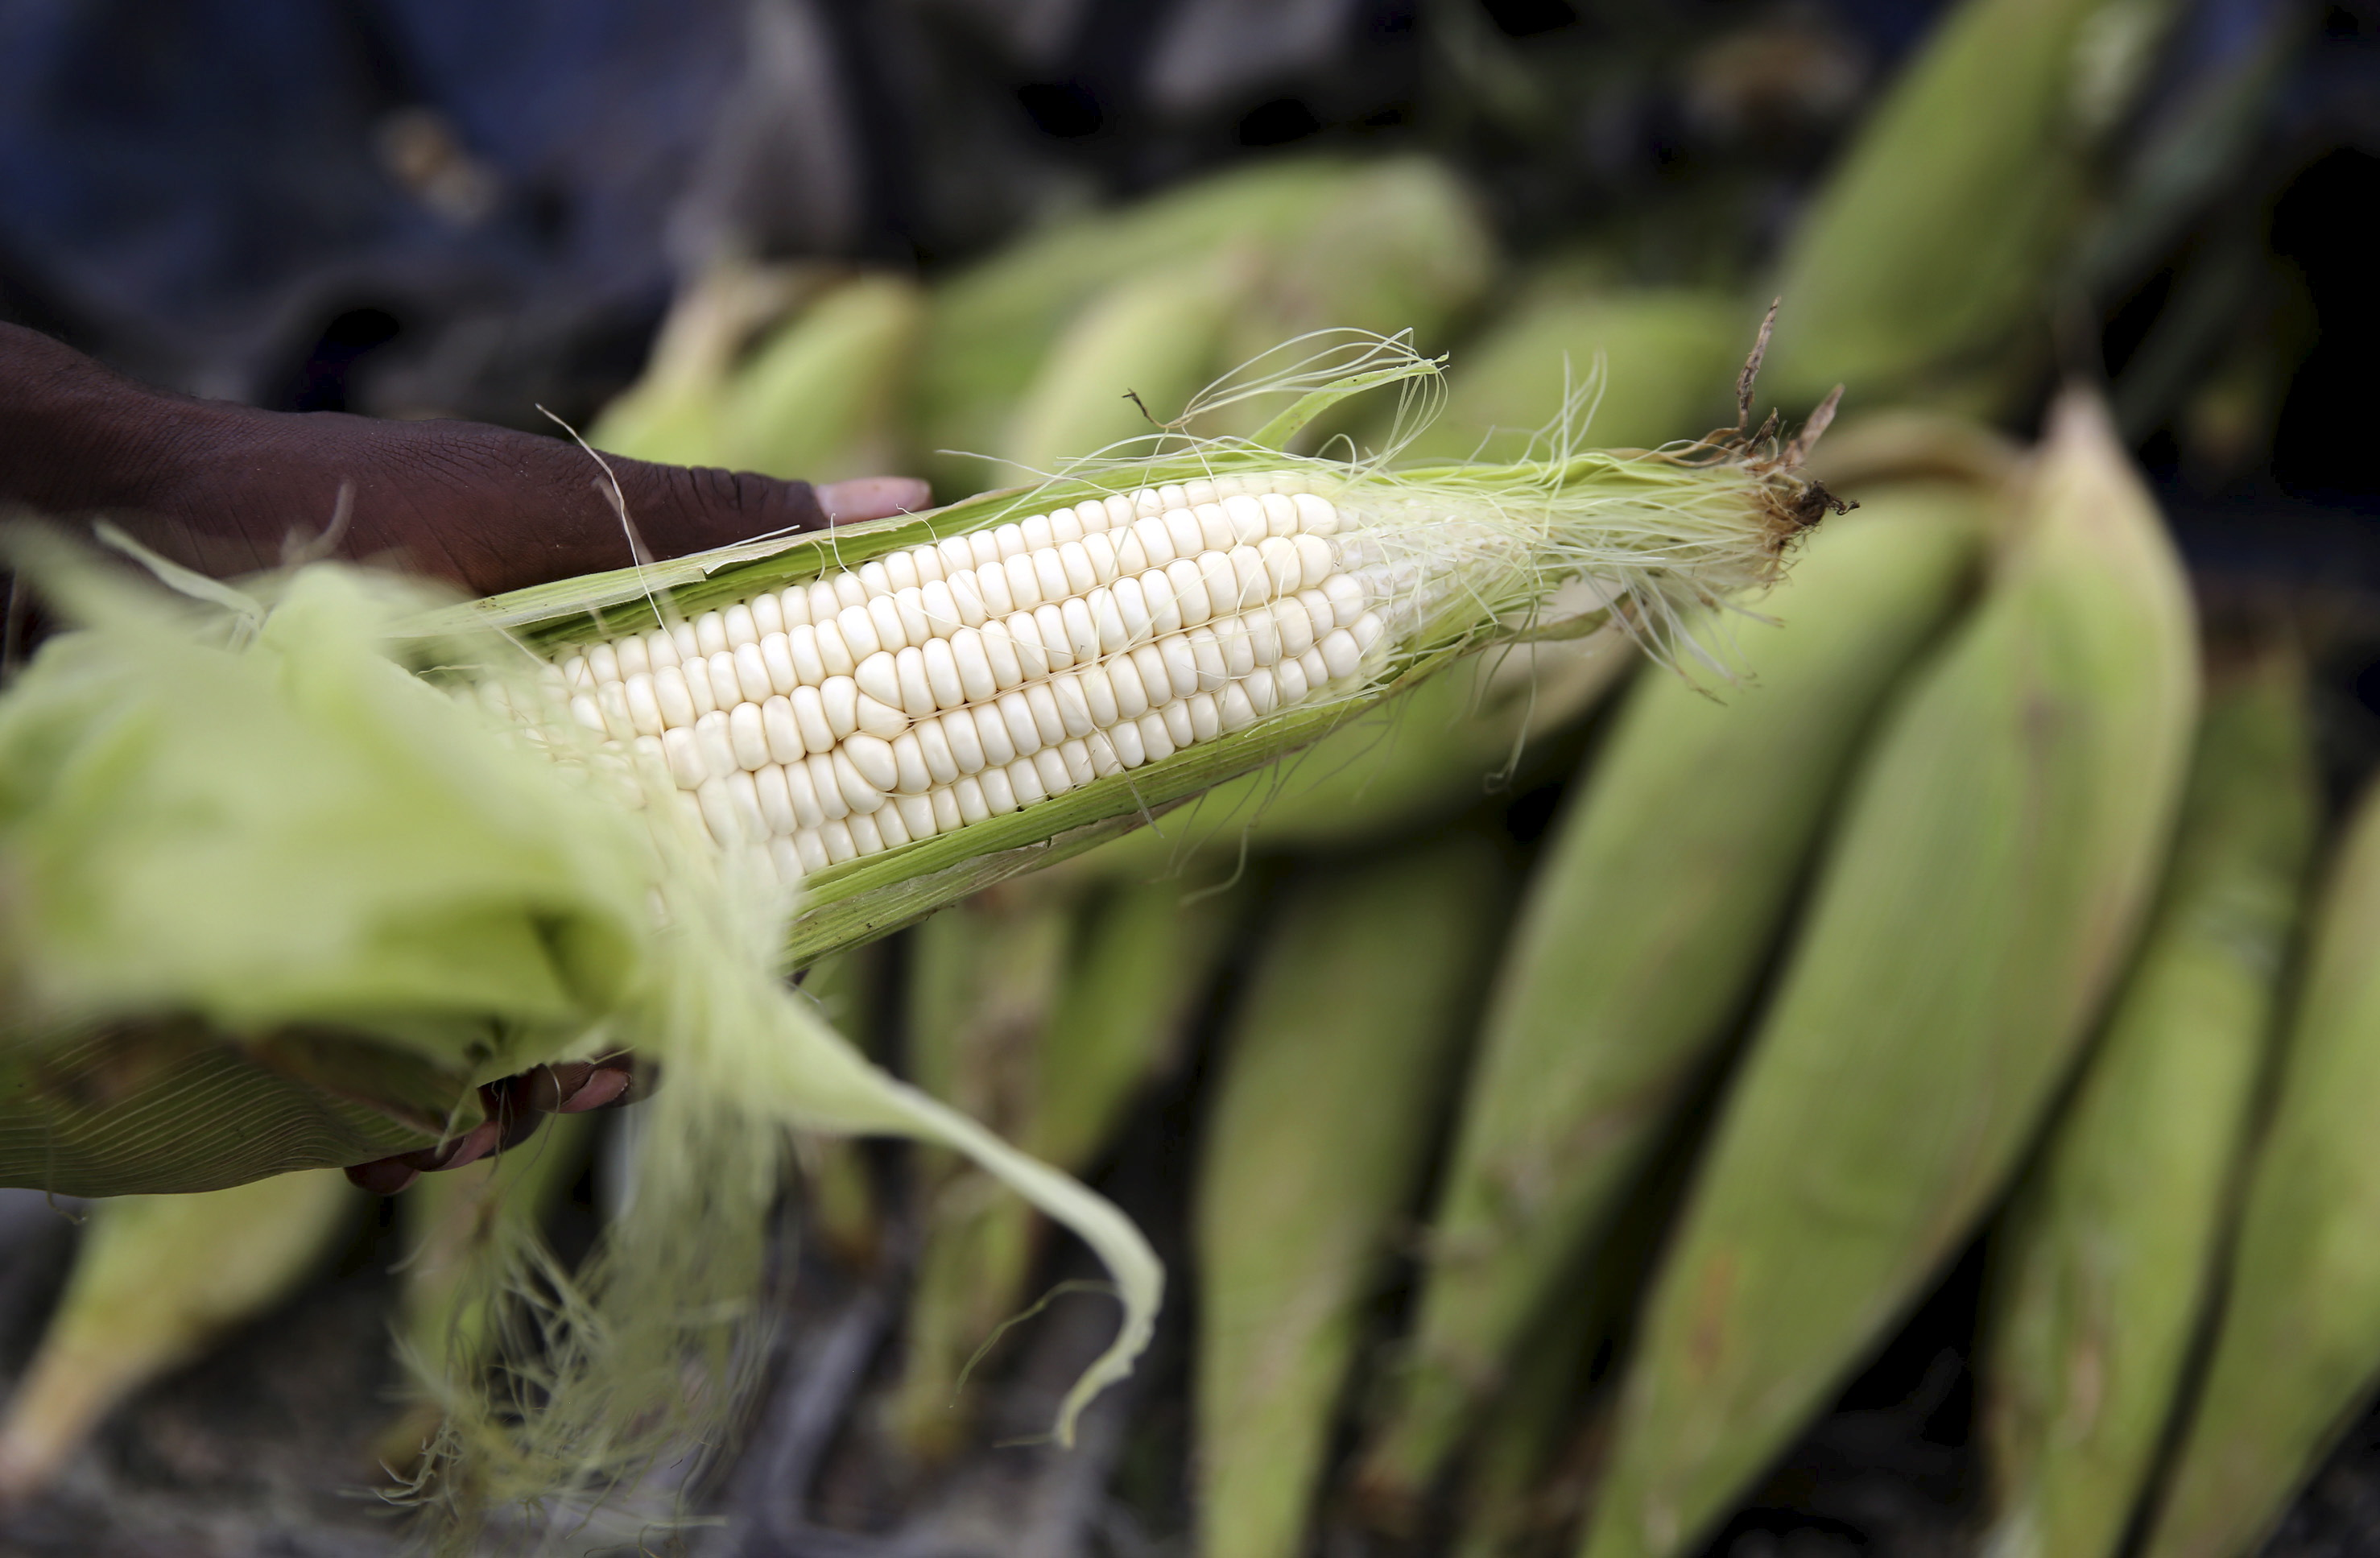 A hawker prepares a cob of corn at his makeshift shop in Soweto, January 27, 2016. South Africa will likely harvest 7.44 million tonnes of maize in 2016, 25 percent less than the 9.94 million tonnes reaped last year because of a scorching drought, a government agency said on Wednesday. REUTERS/Siphiwe Sibeko - RTX249L8